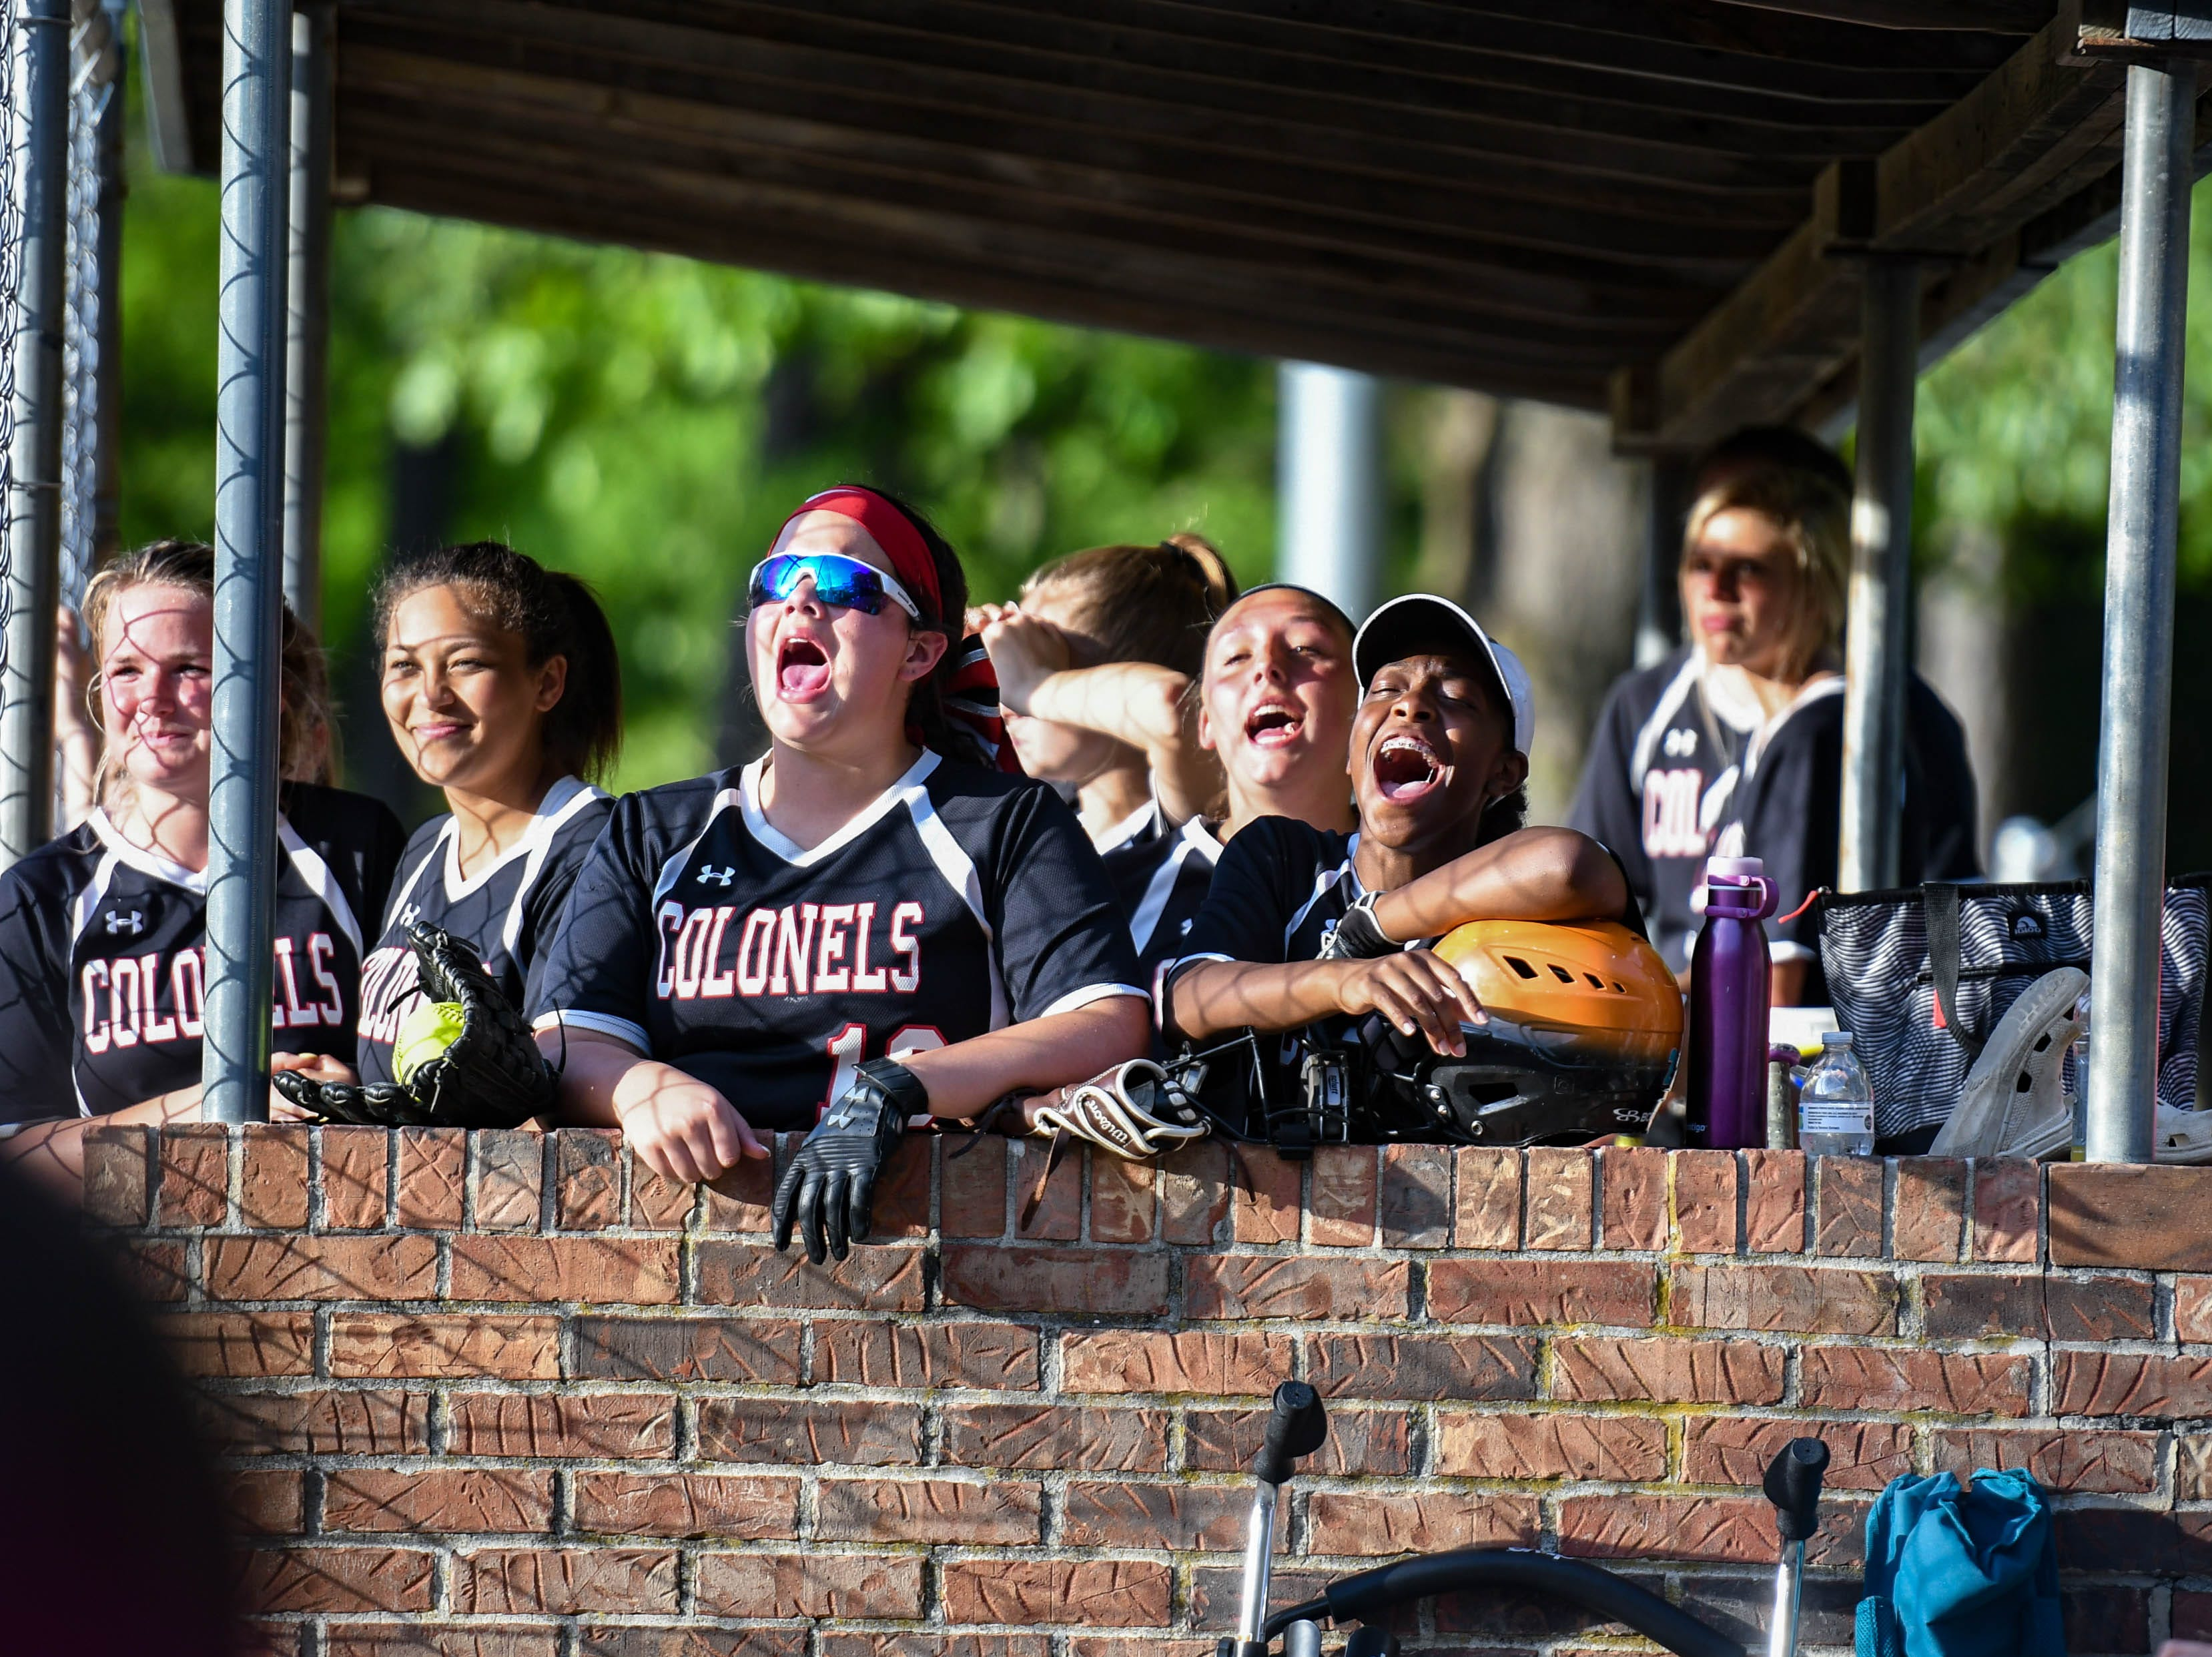 The Colonel Richardson's team cheers during the game against Decatur in the Bayside Softball Championship game on Wednesday, May 8, 2019. Decatur prevailed with a score of 4 to 1.